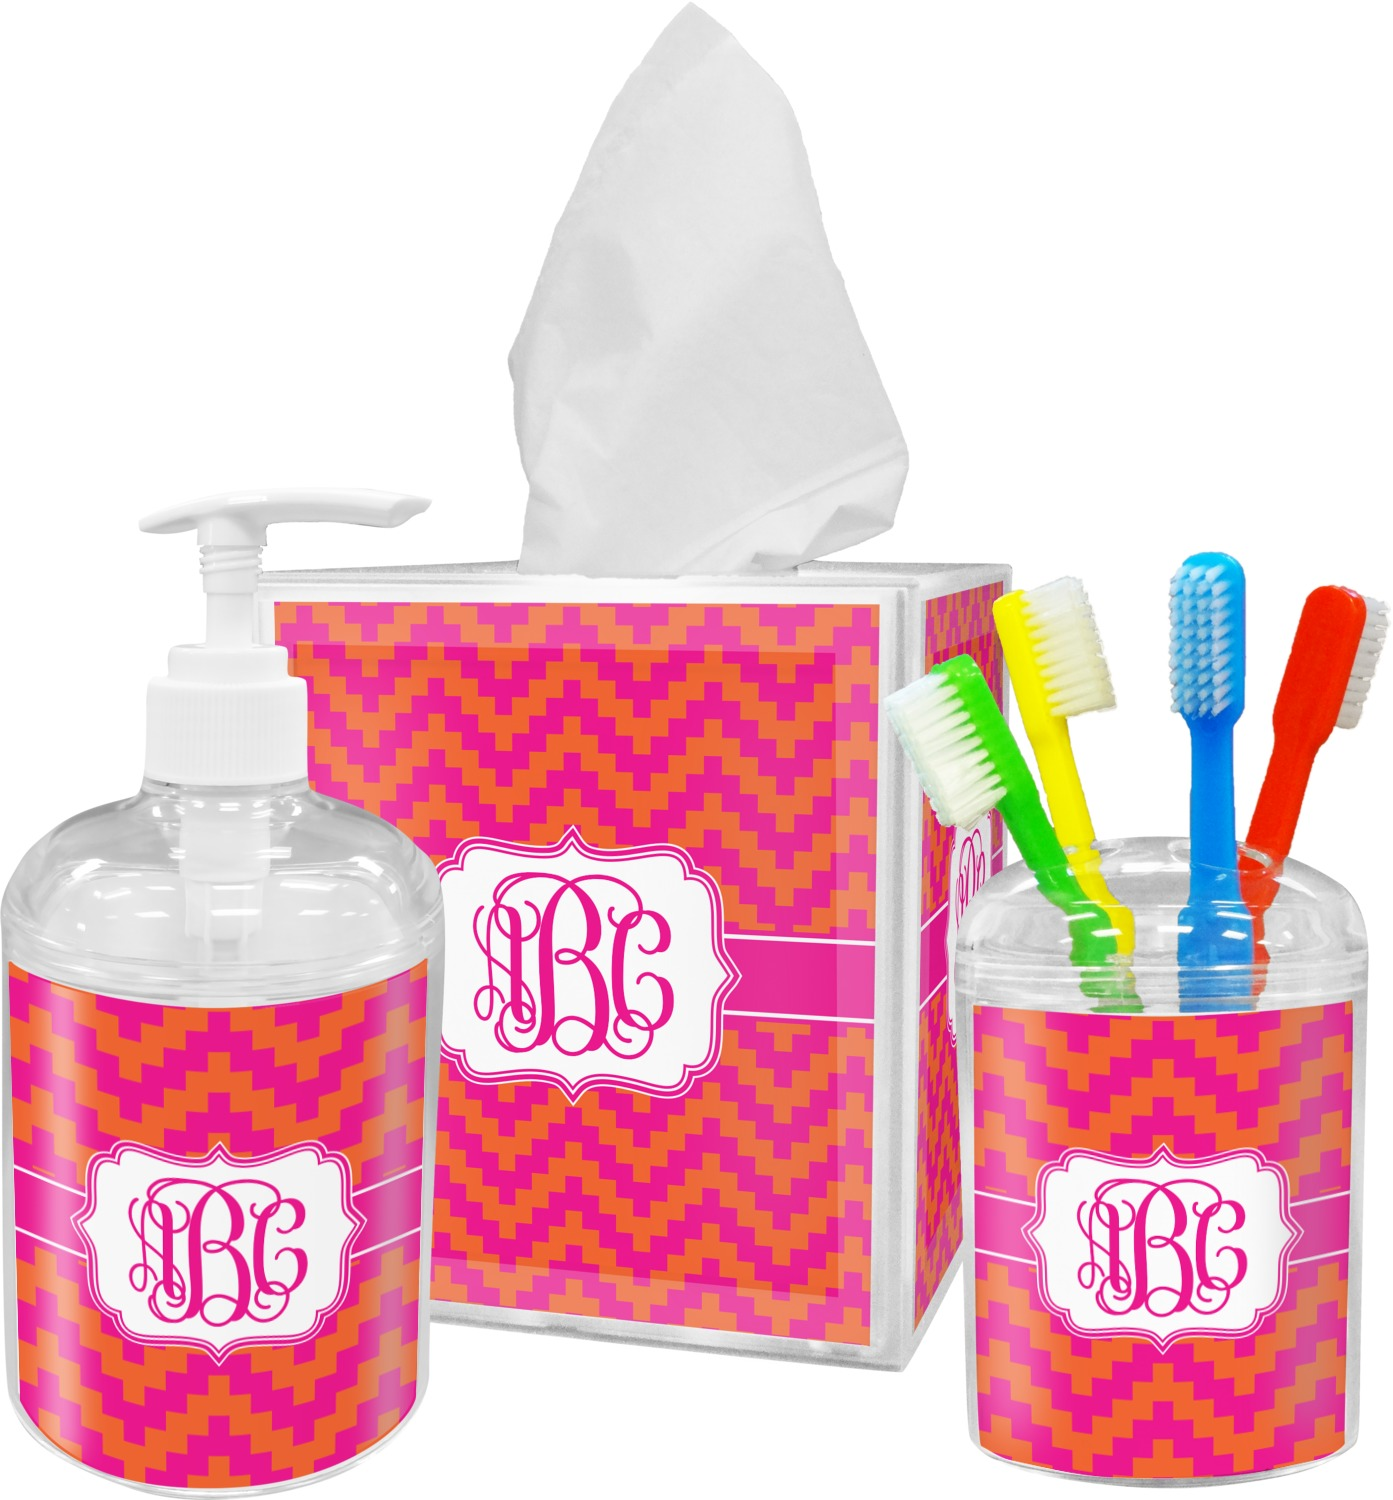 Plastic bathroom sets - Pink Orange Chevron Bathroom Accessories Set Personalized